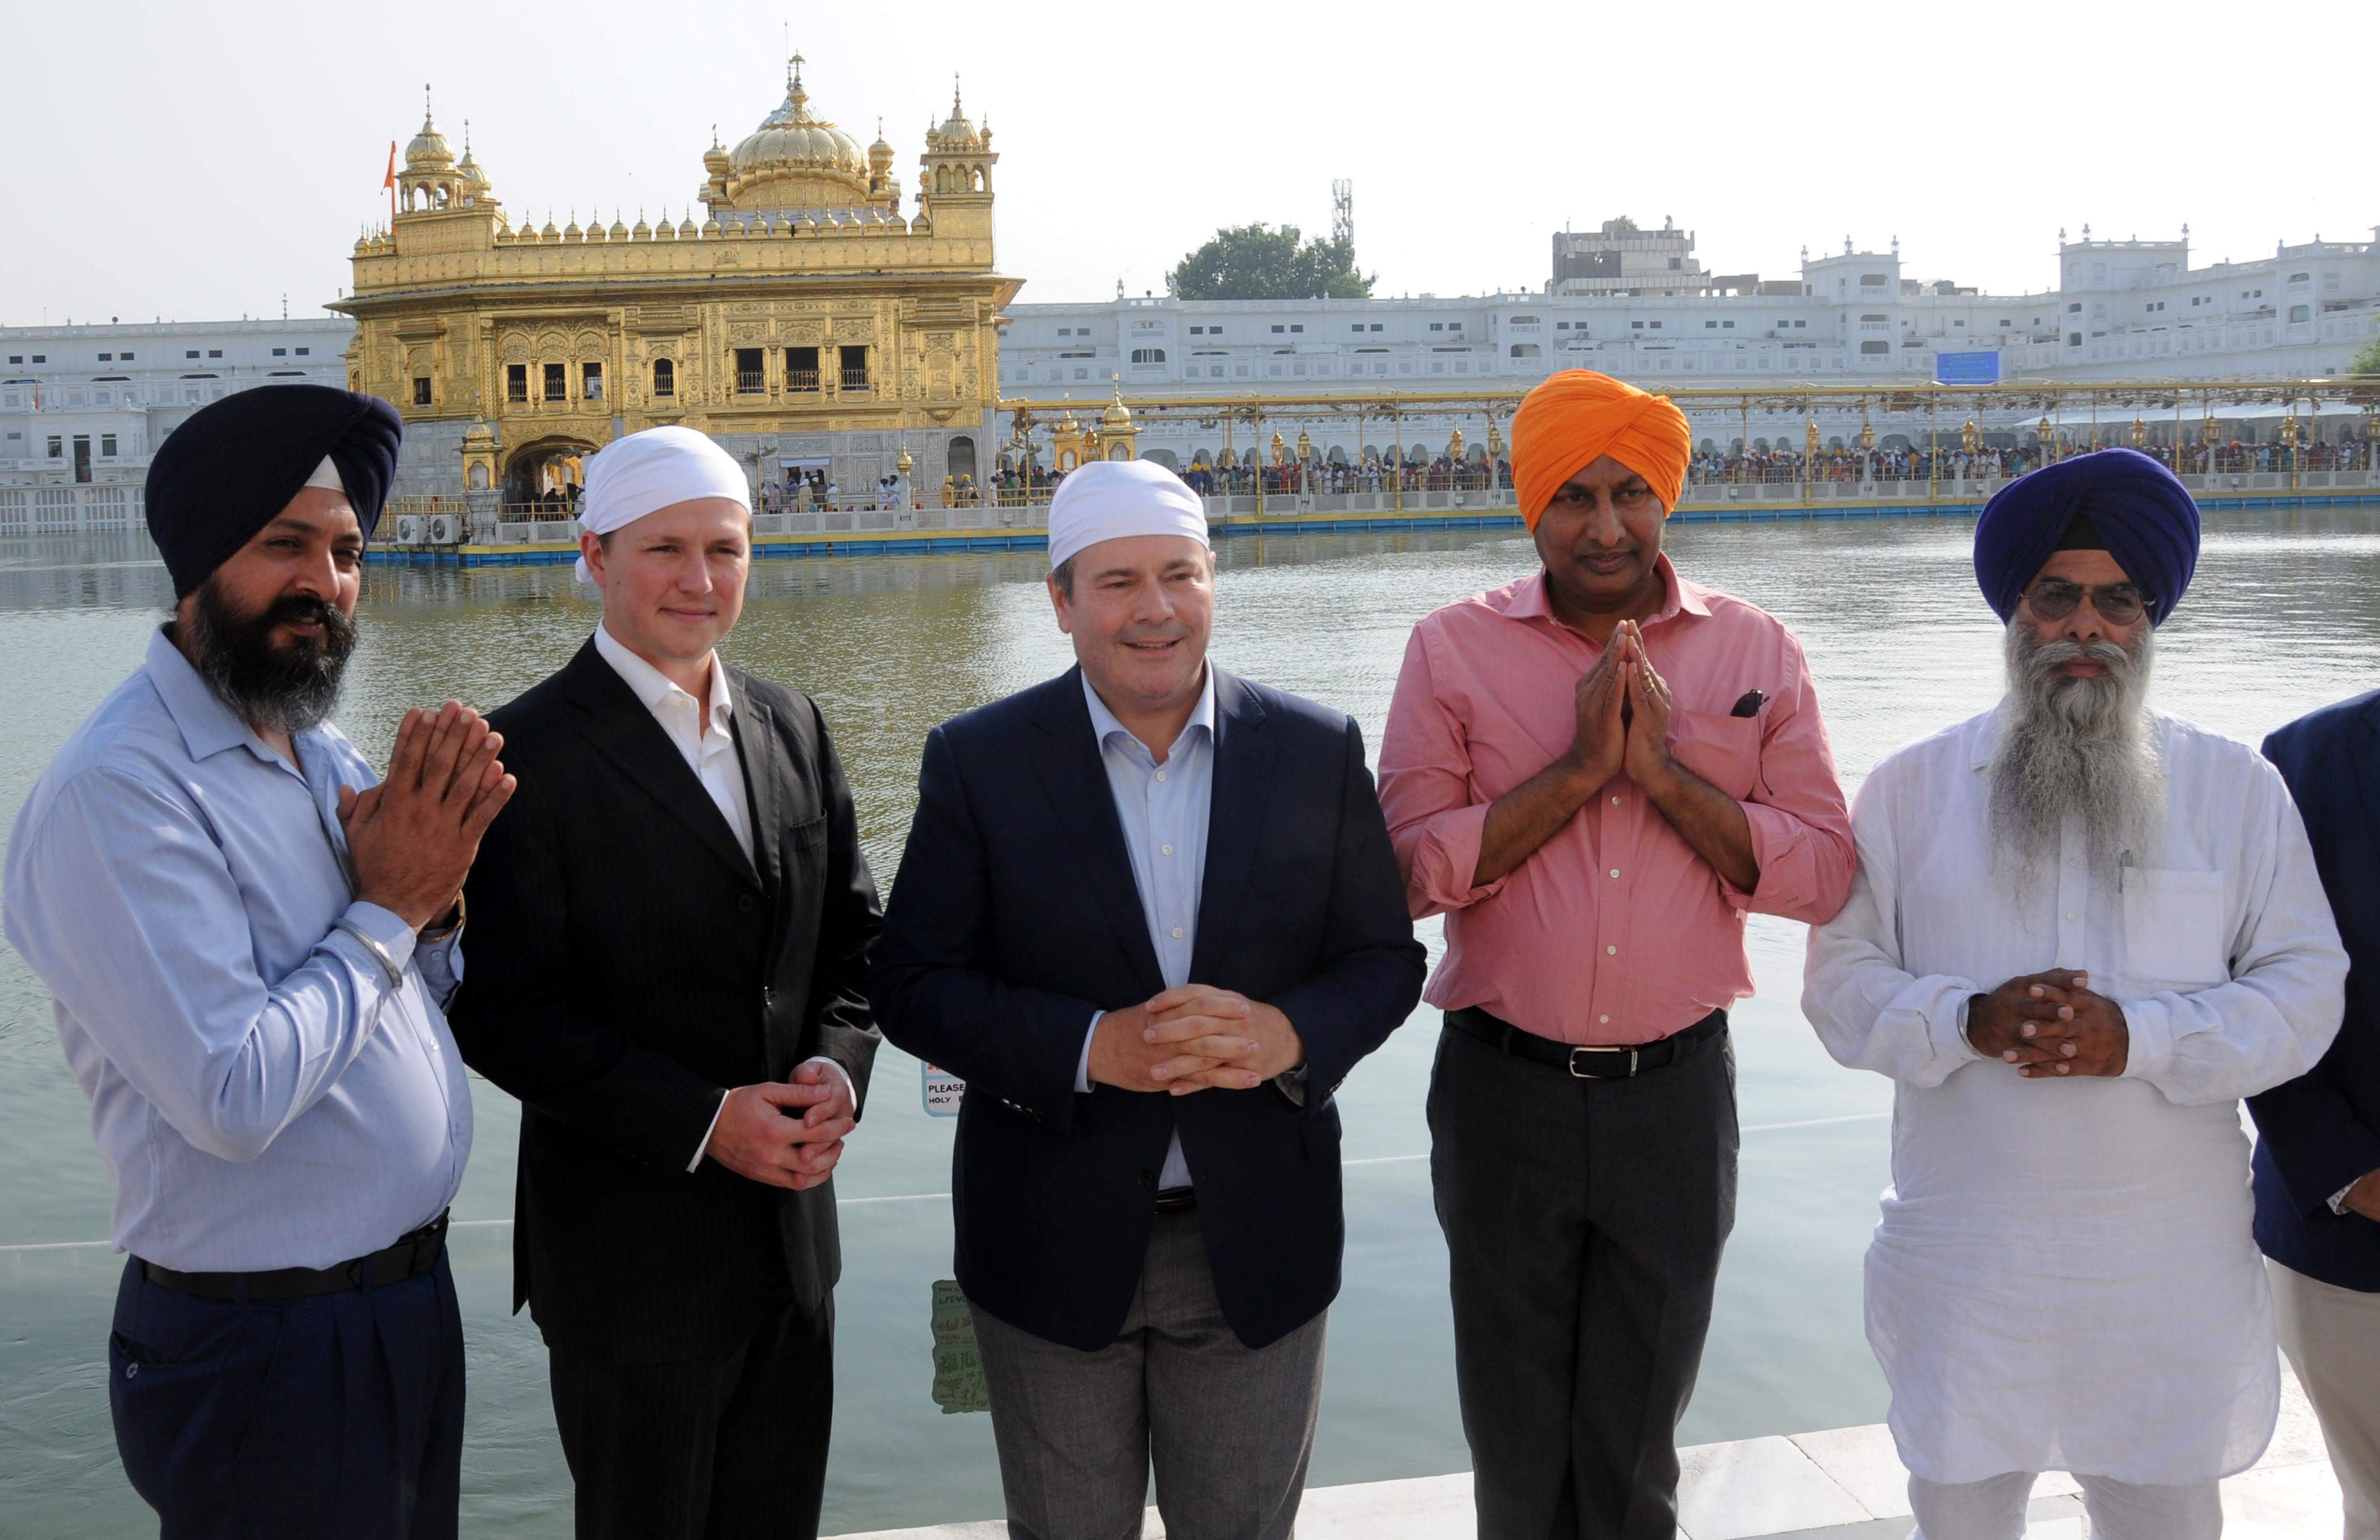 https://d3n8a8pro7vhmx.cloudfront.net/prasadpanda/pages/13/features/original/Golden_Temple_with_Devin_Dreeshen_and_Jason_Kenney.jpg?1545339969